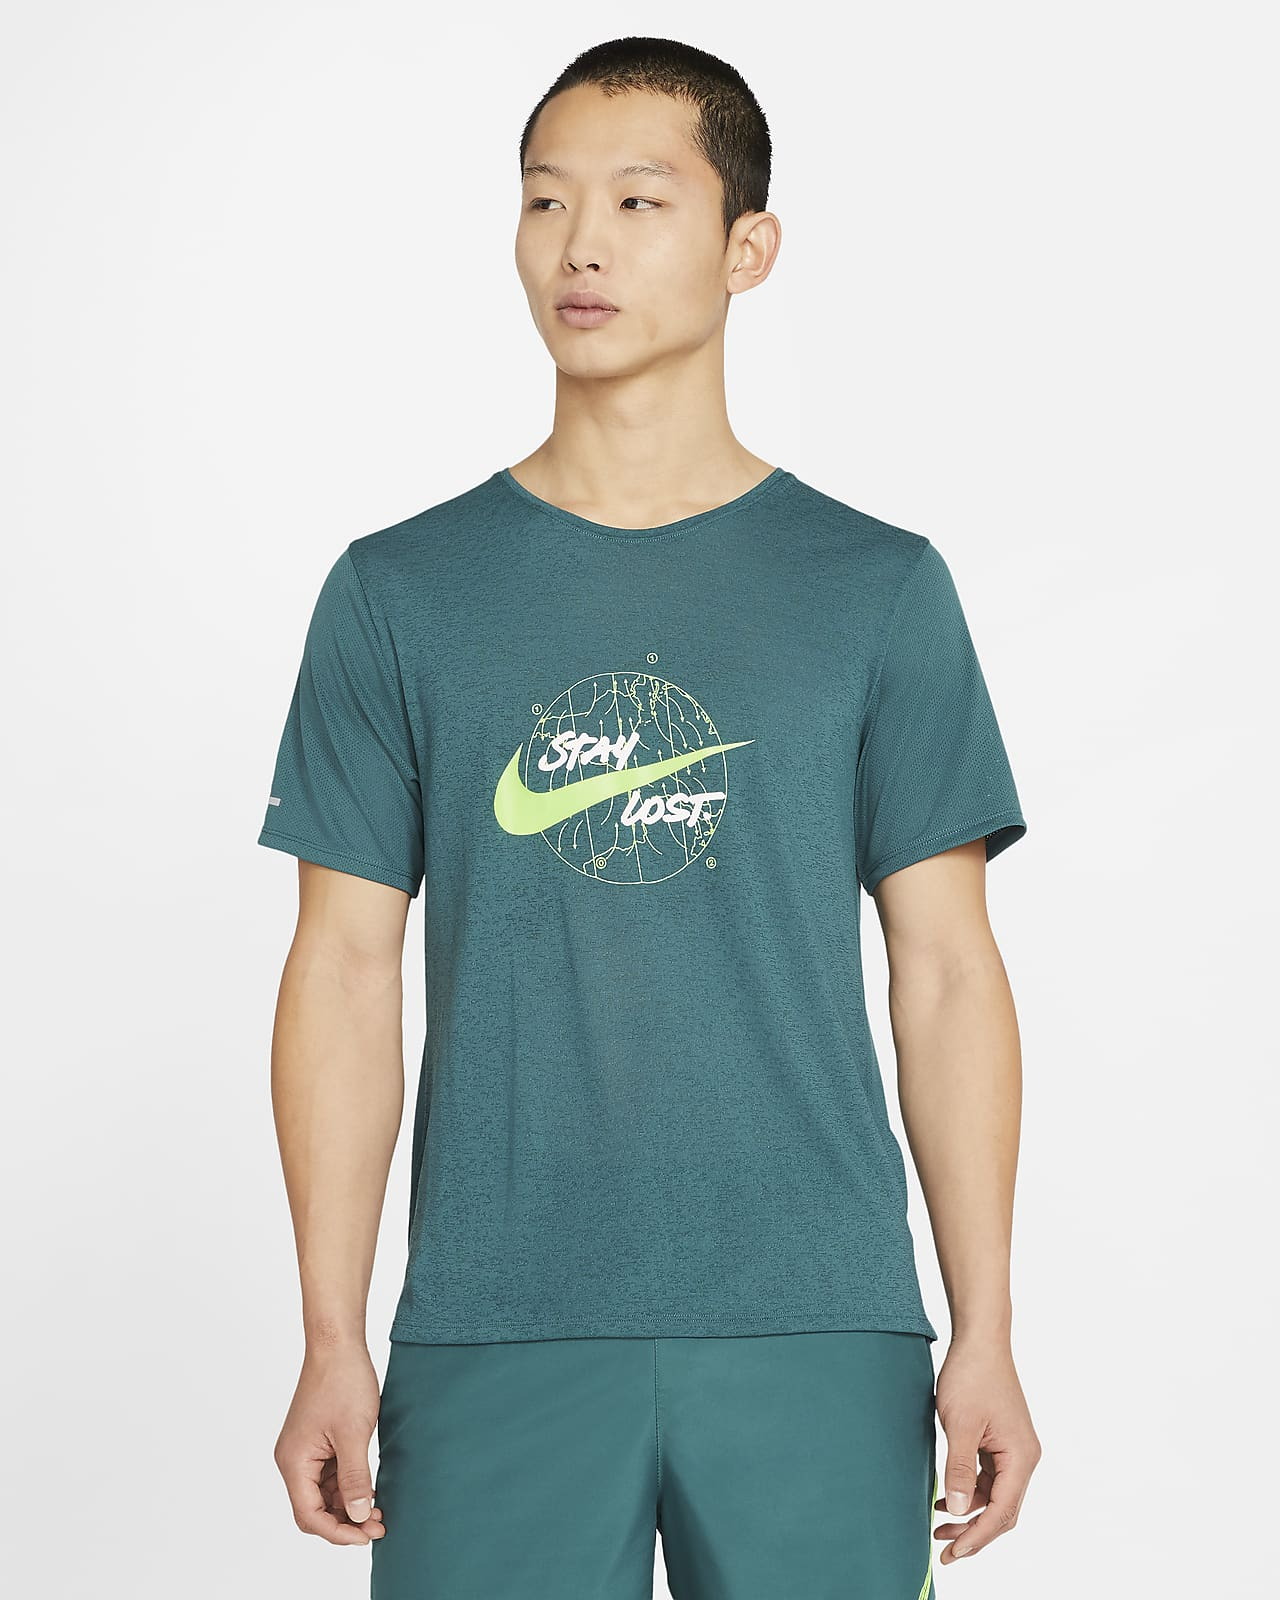 Nike Dri-FIT Miler Wild Run Men's Short-Sleeve Running Top